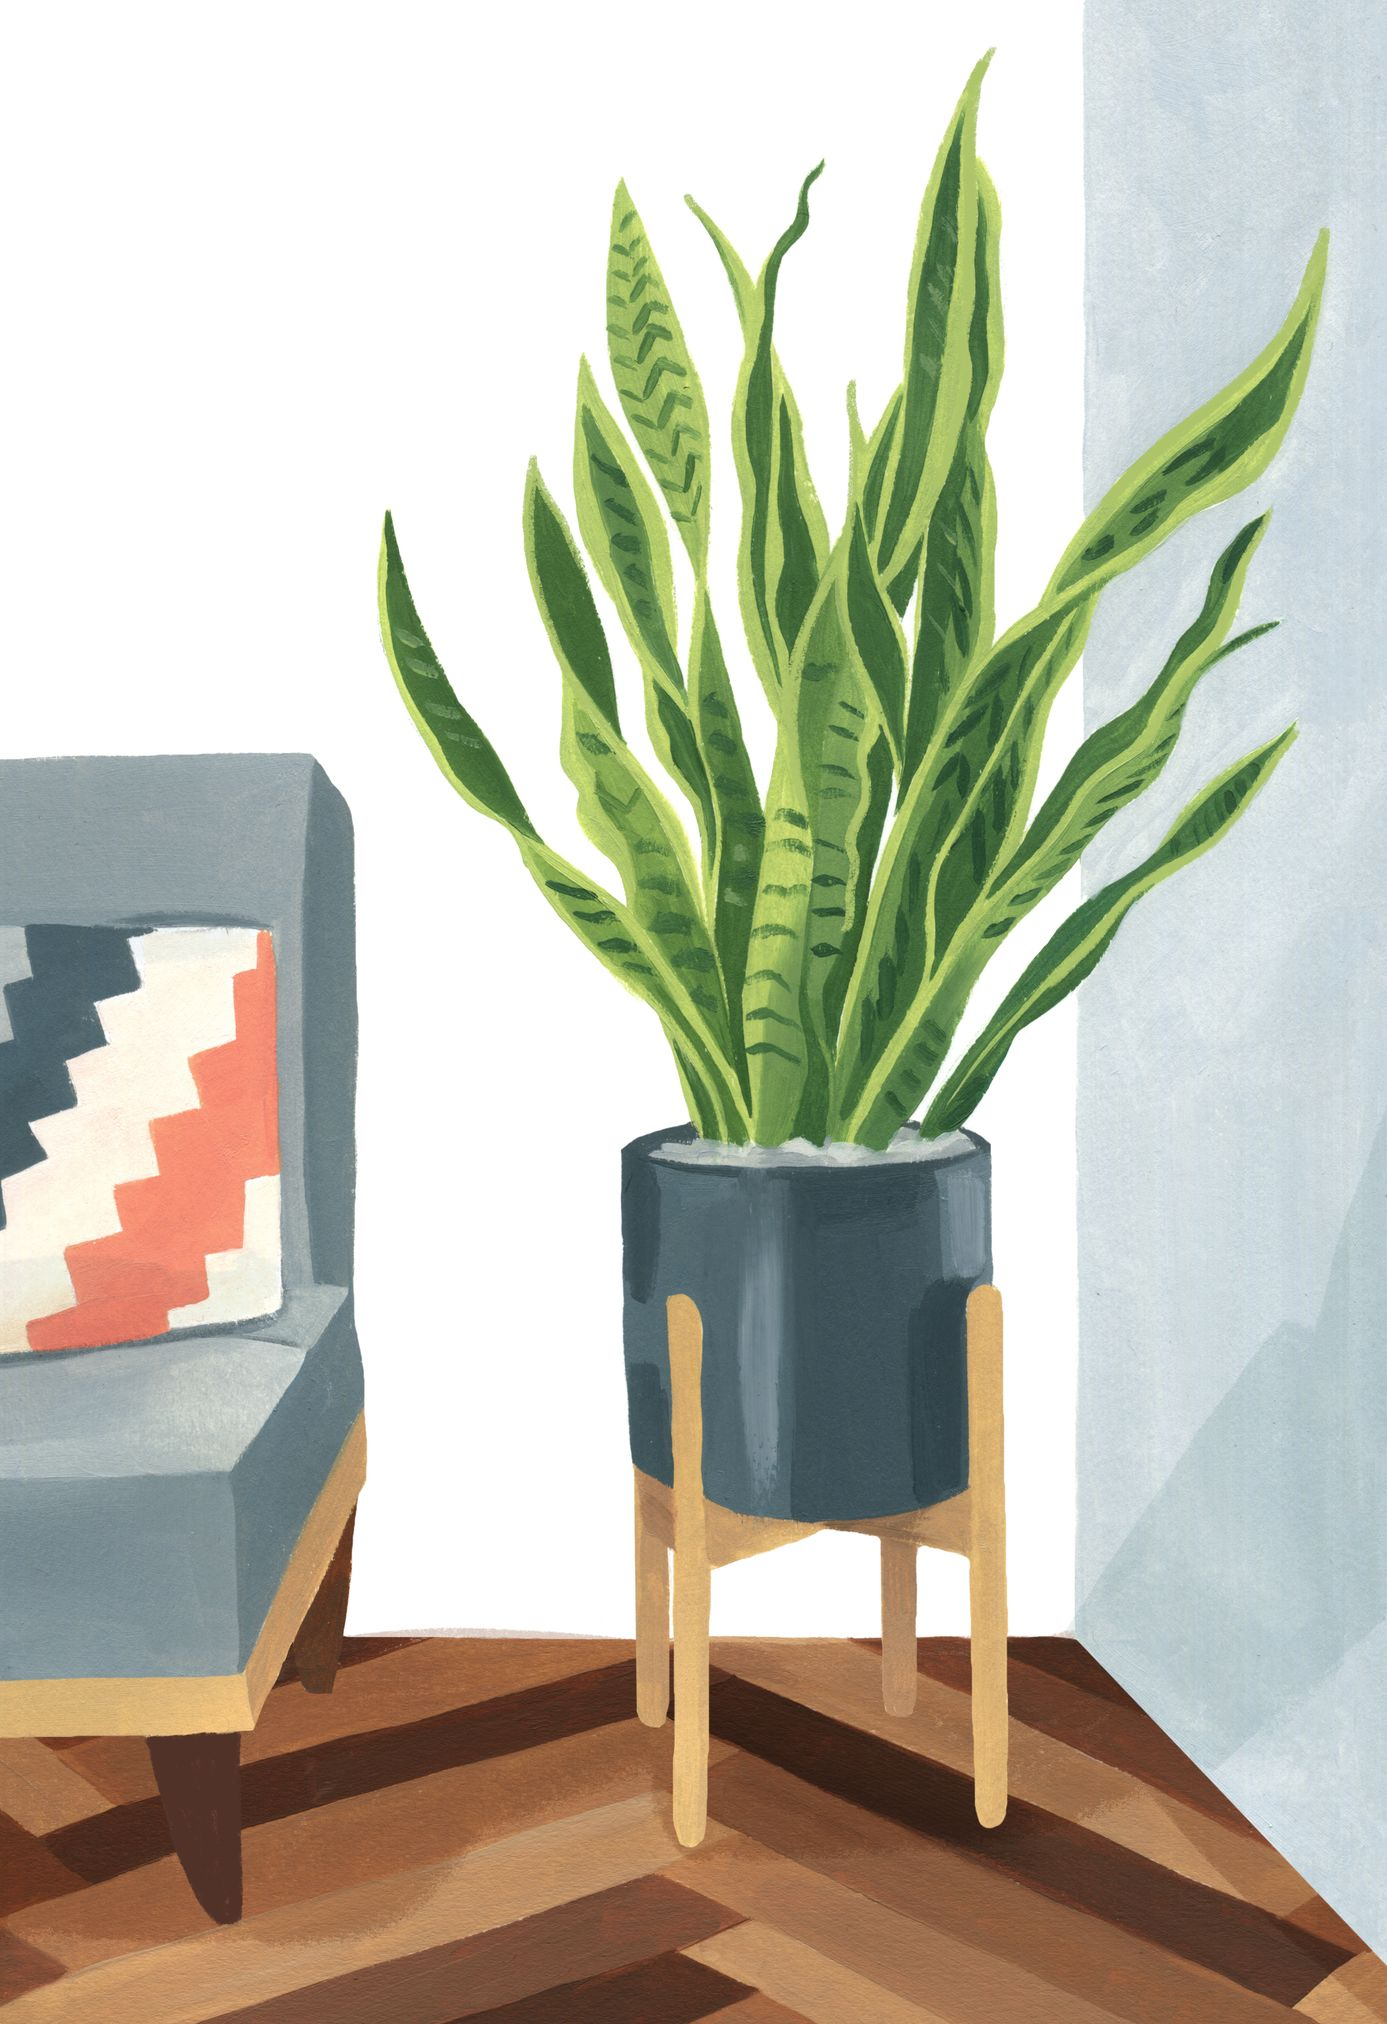 Garance-Illustration-Grace-Helmer-Plantfulness-Snake-Plant